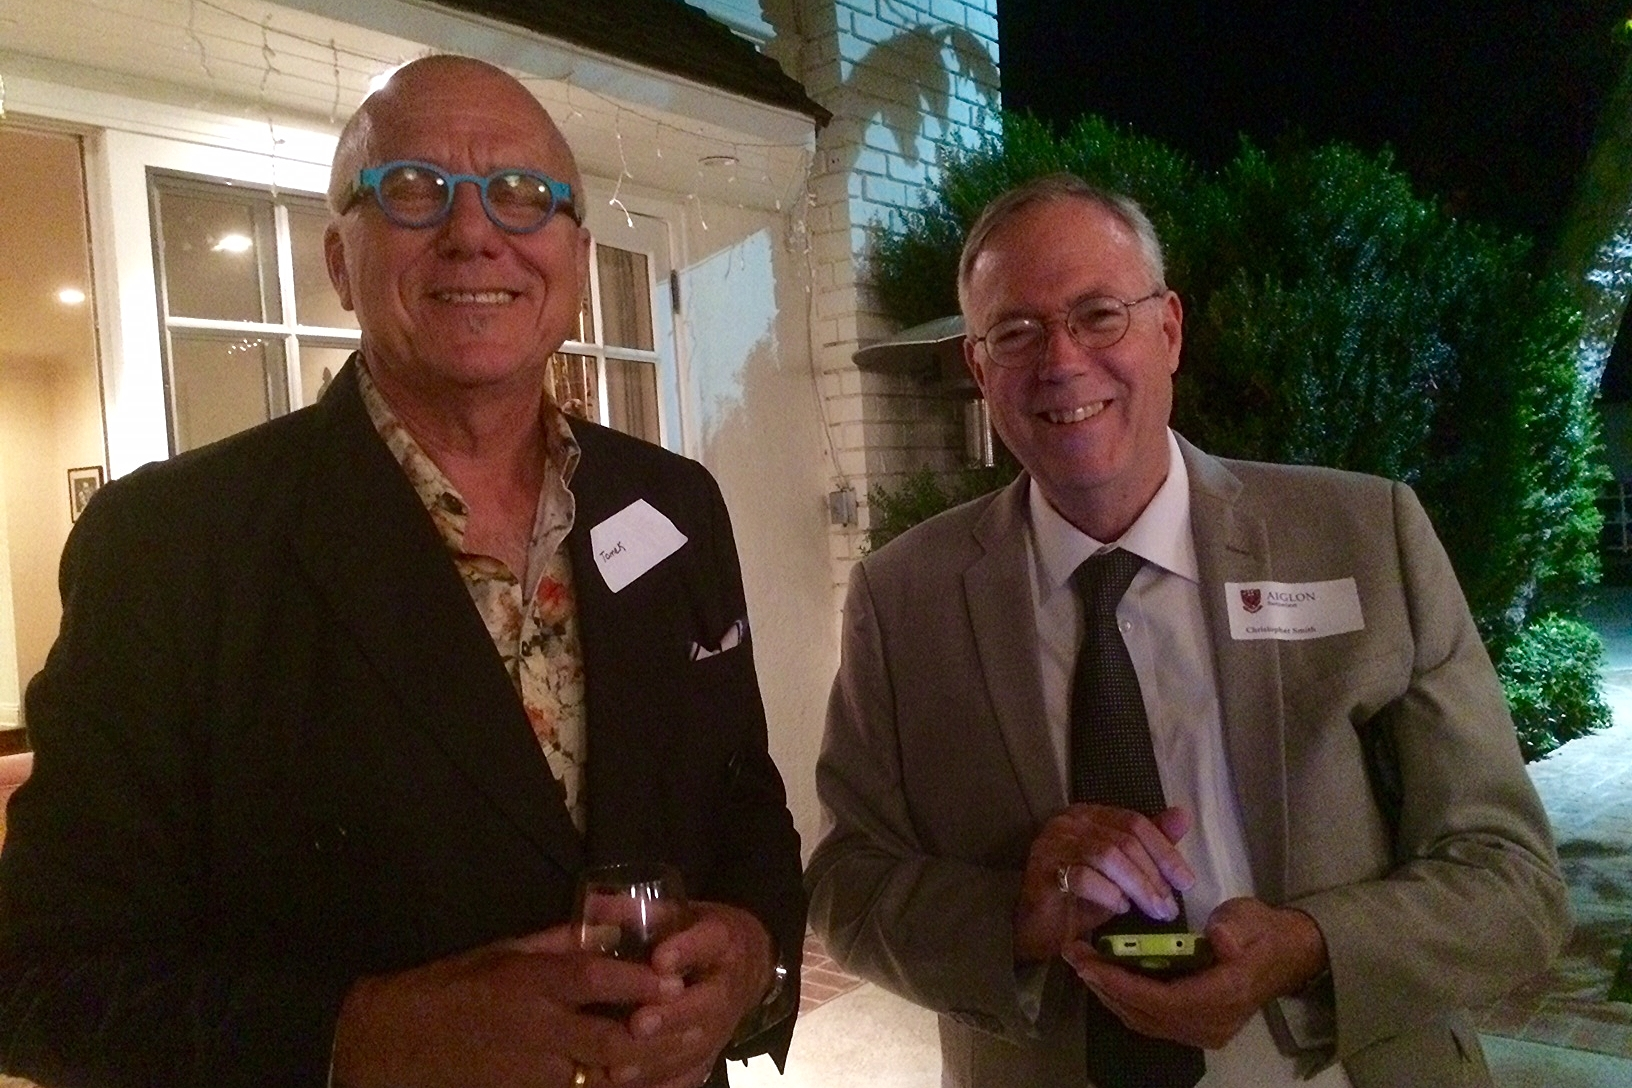 The Los Angeles October 2015 Reception, hosted by alumna Cecilia Peck Voll, Aiglon College, and the FOAC (U.S.)